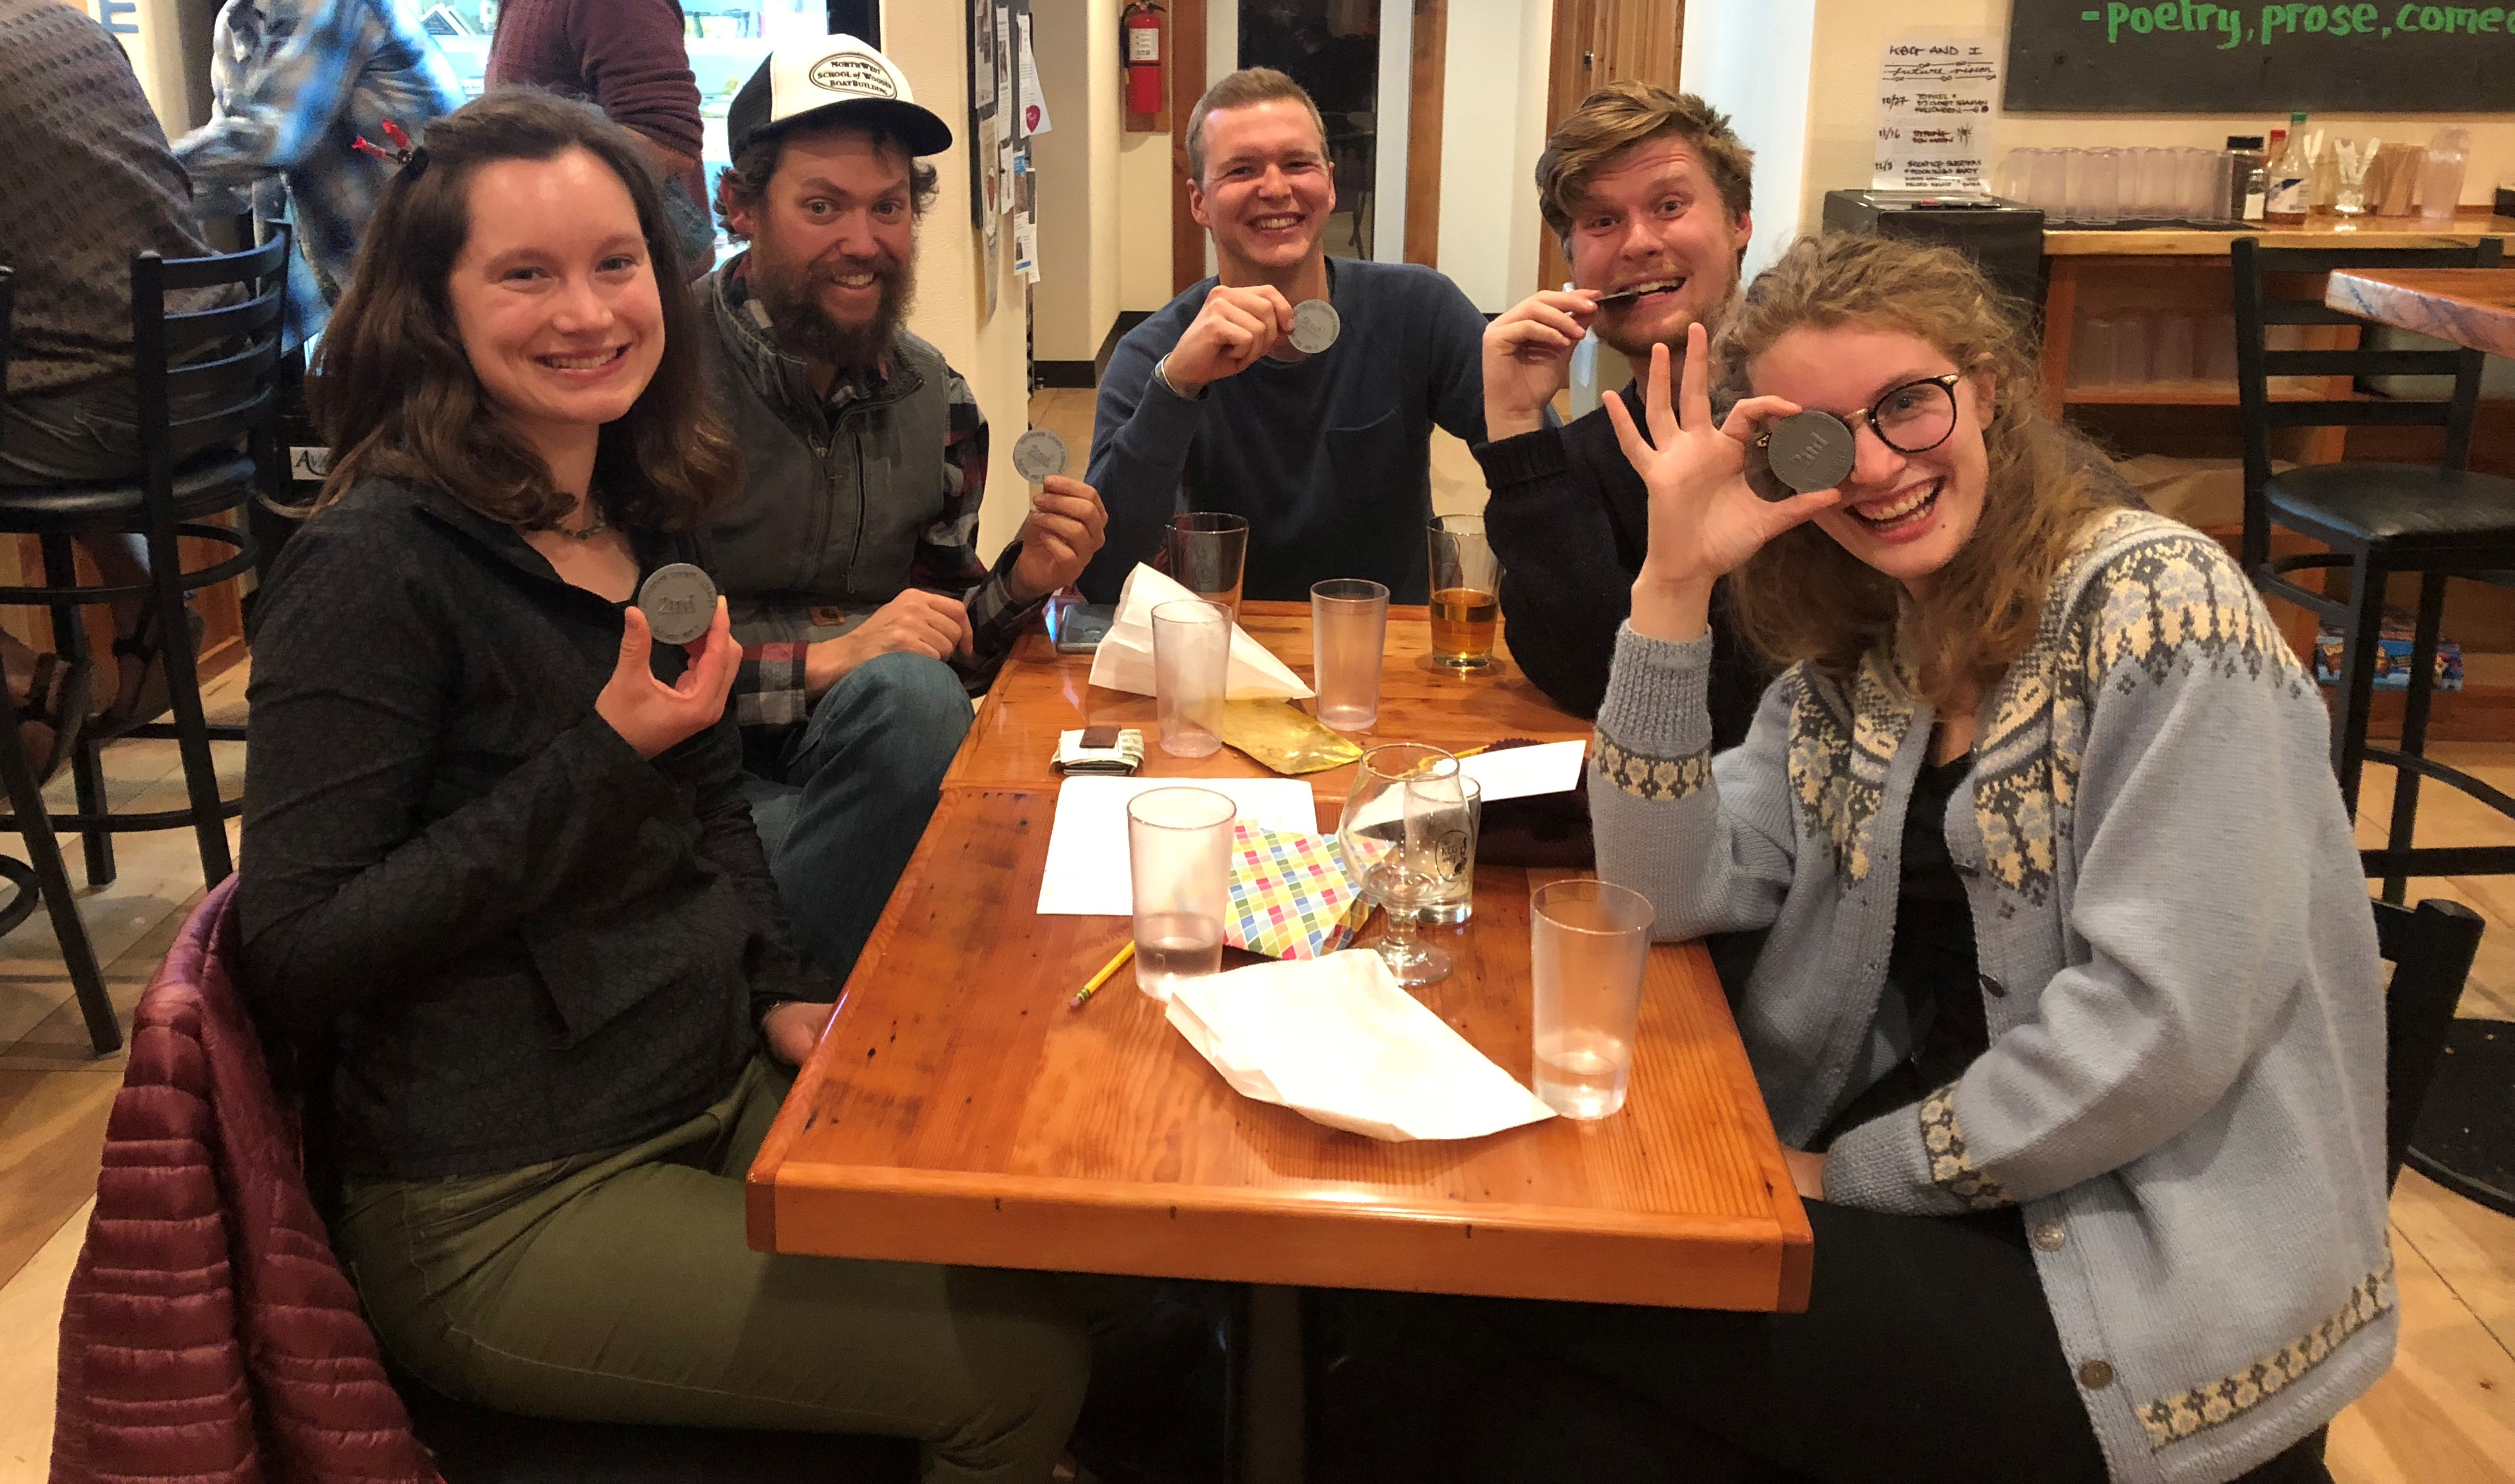 Group of adults sitting at a table during a trivia event